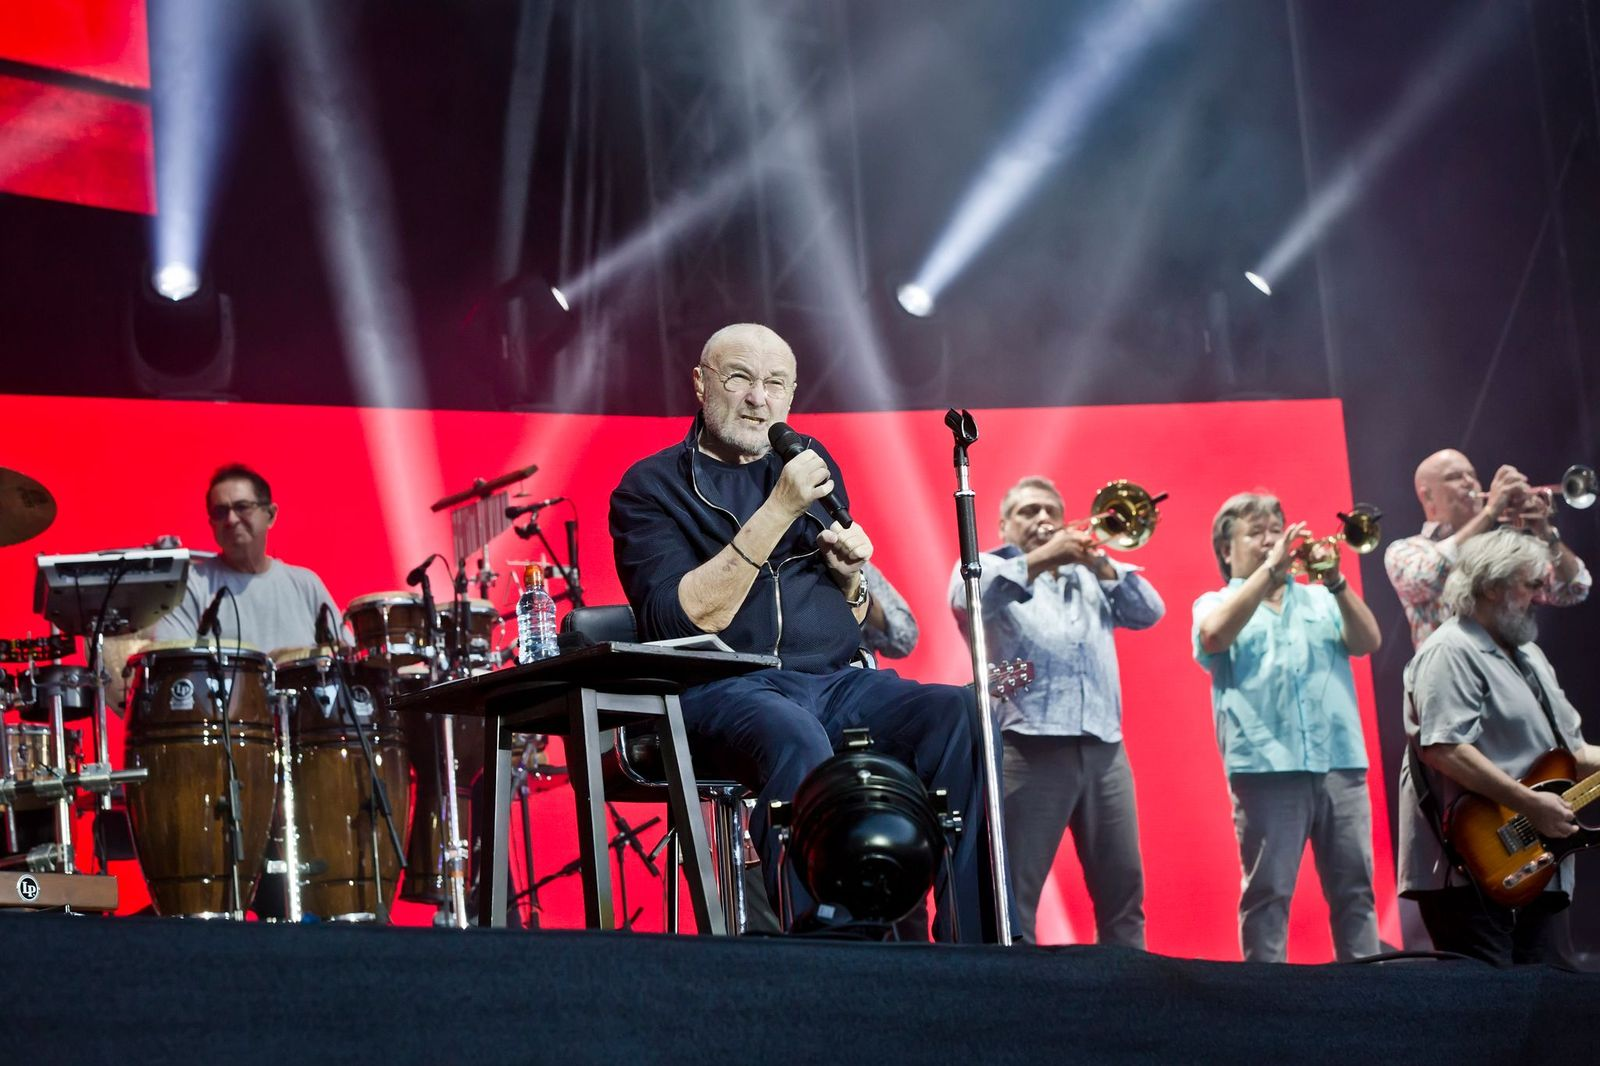 Phil Collins performs live on stage during a concert at the Olympiastation on June 7, 2019, in Berlin, Germany | Photo: Frank Hoensch/Getty Images